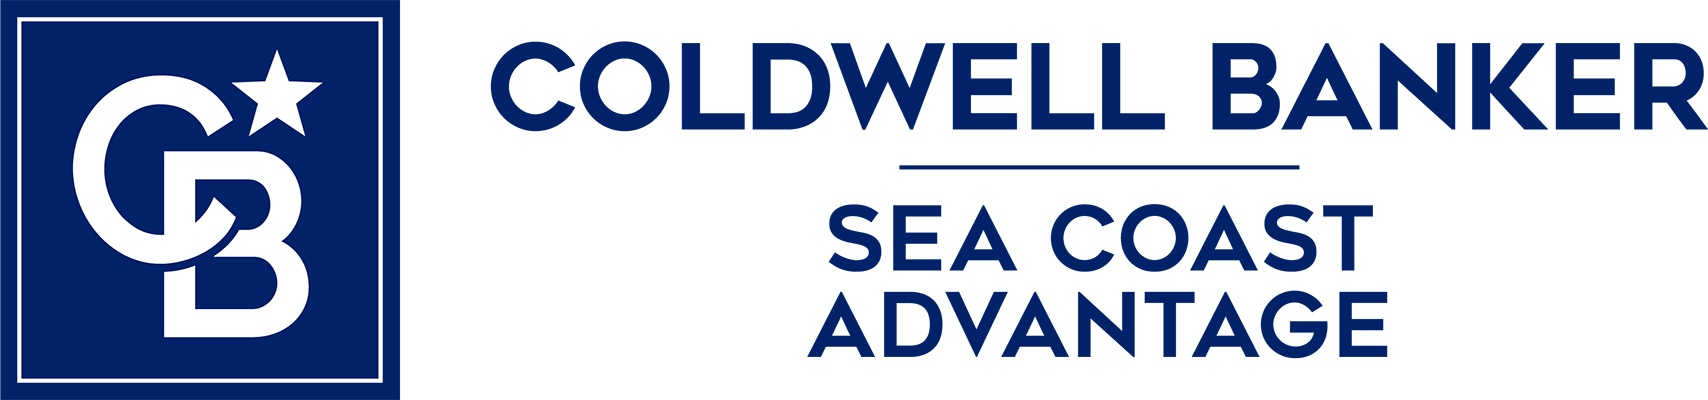 LeeAnn Wells - Coldwell Banker Sea Coast Advantage Realty